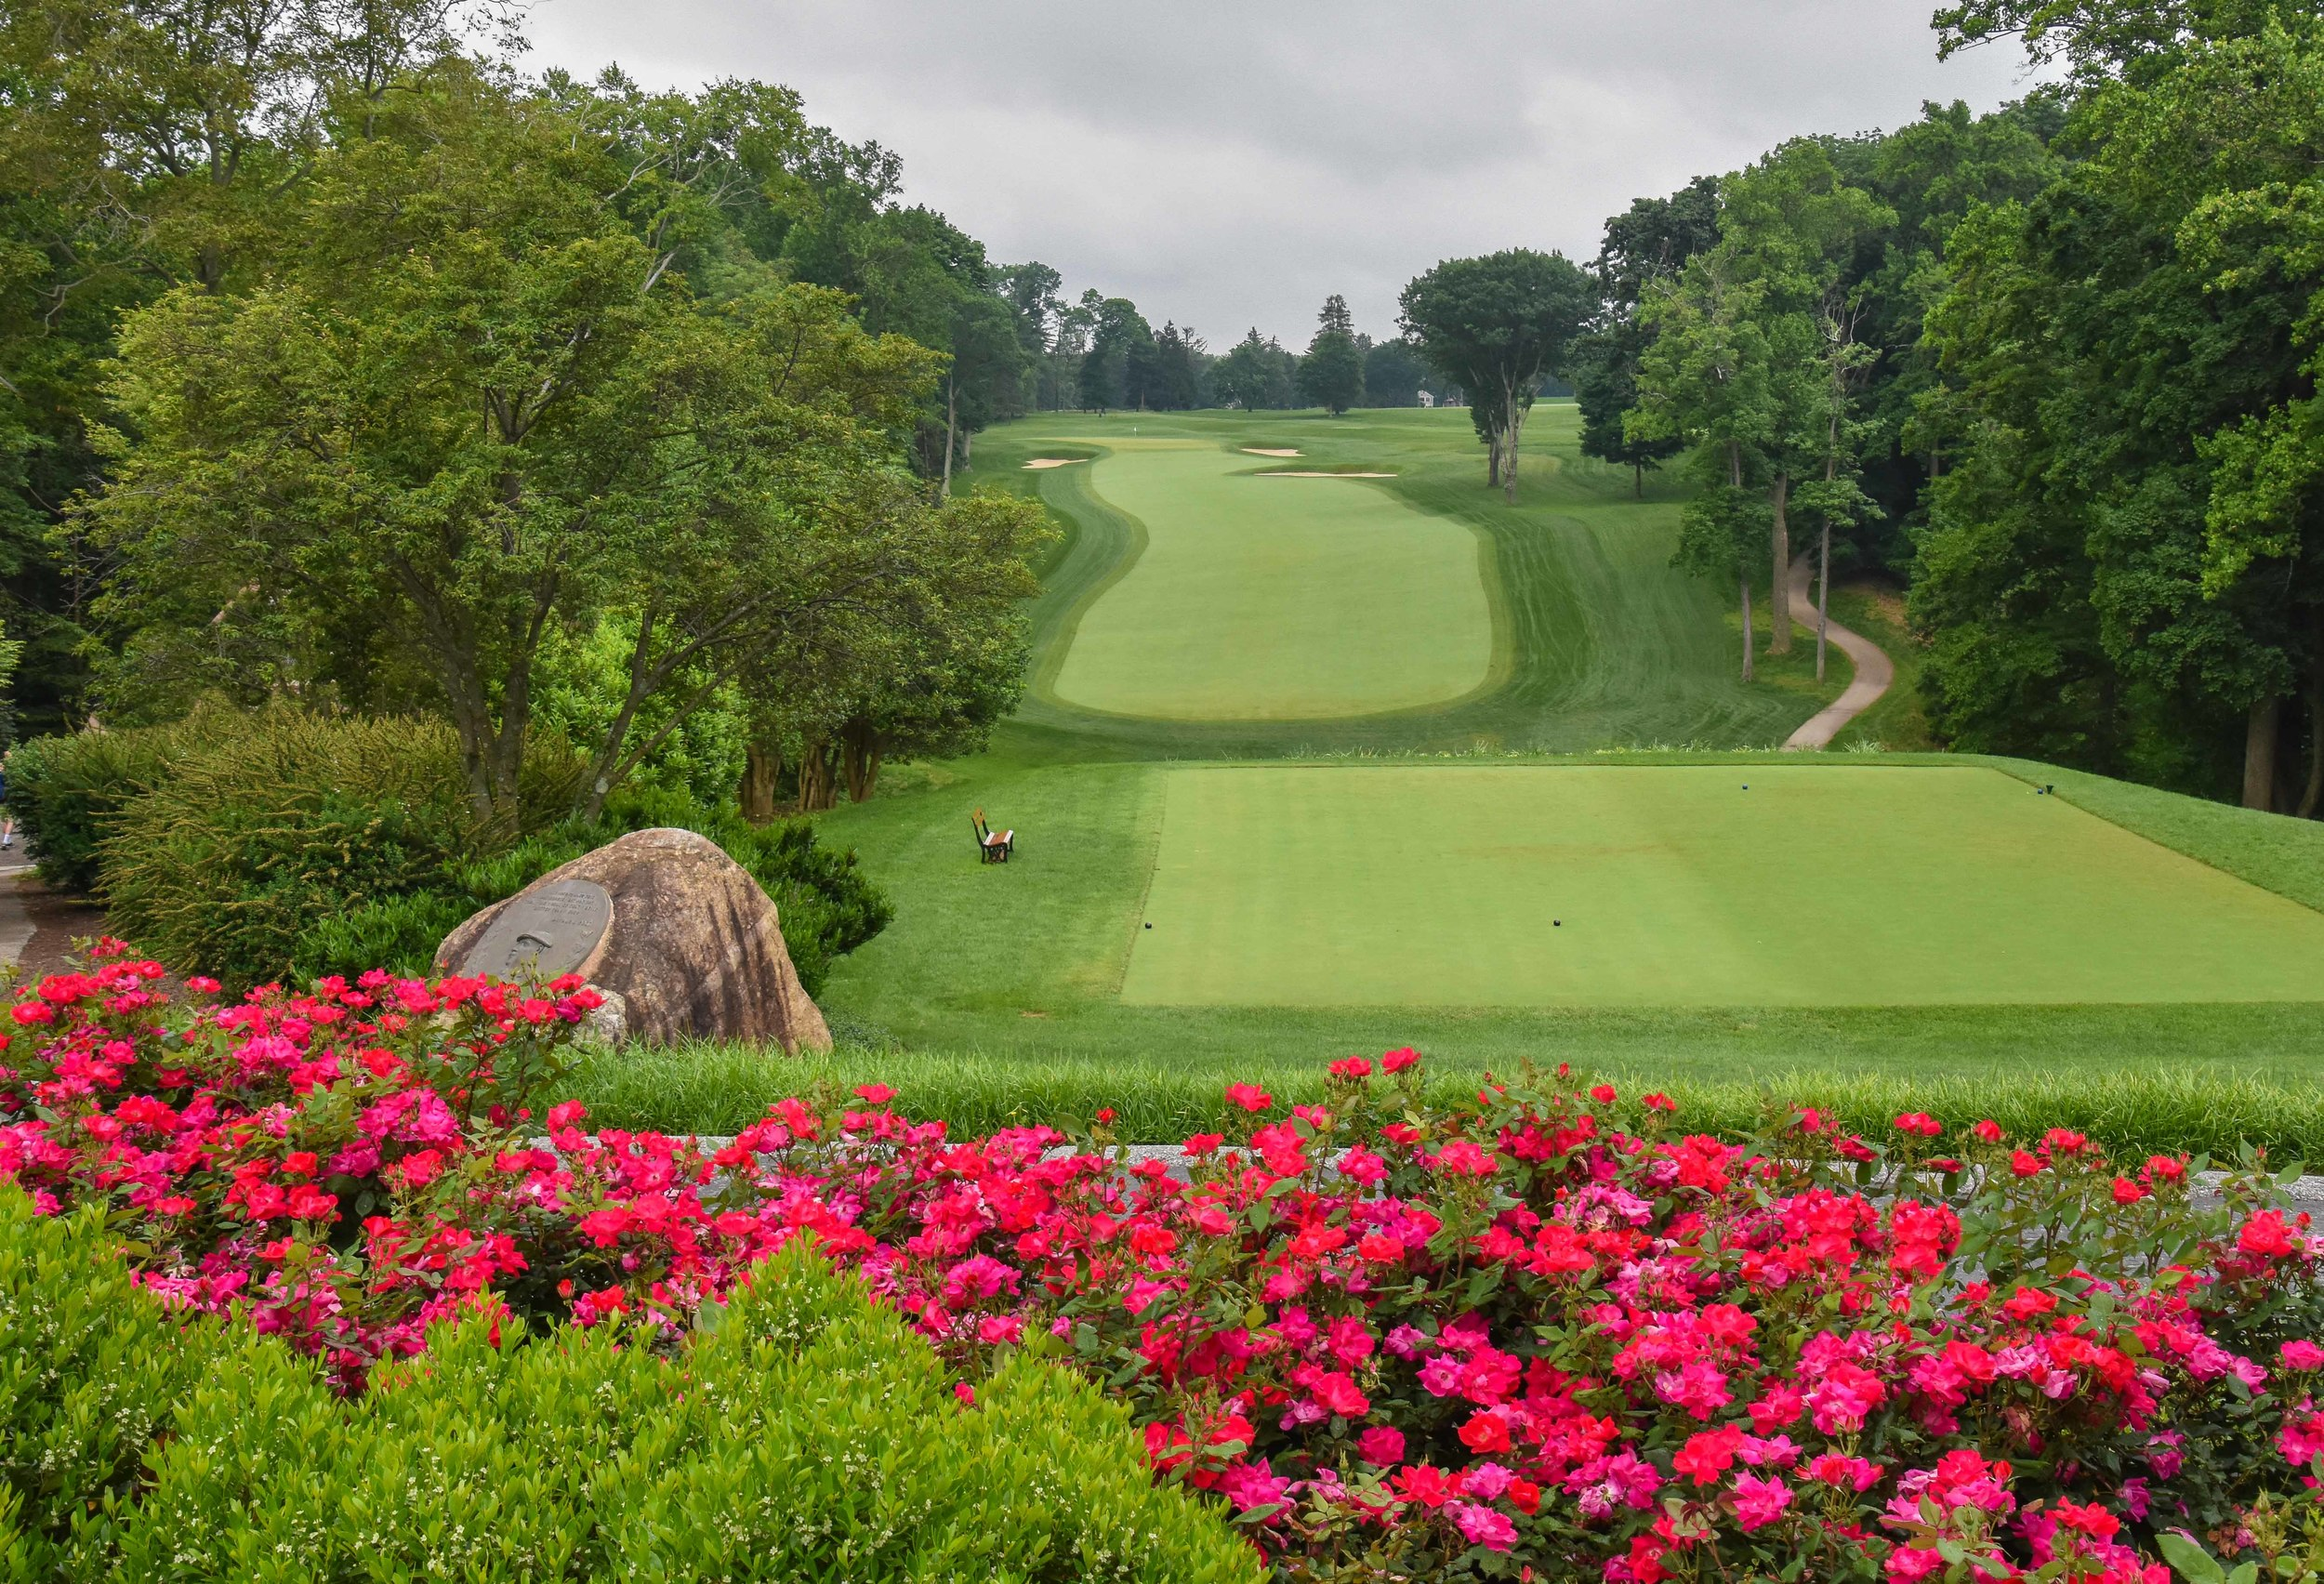 The opening hole at Aronimink inspires excitement. I couldn't get to the 1st tee fast enough.